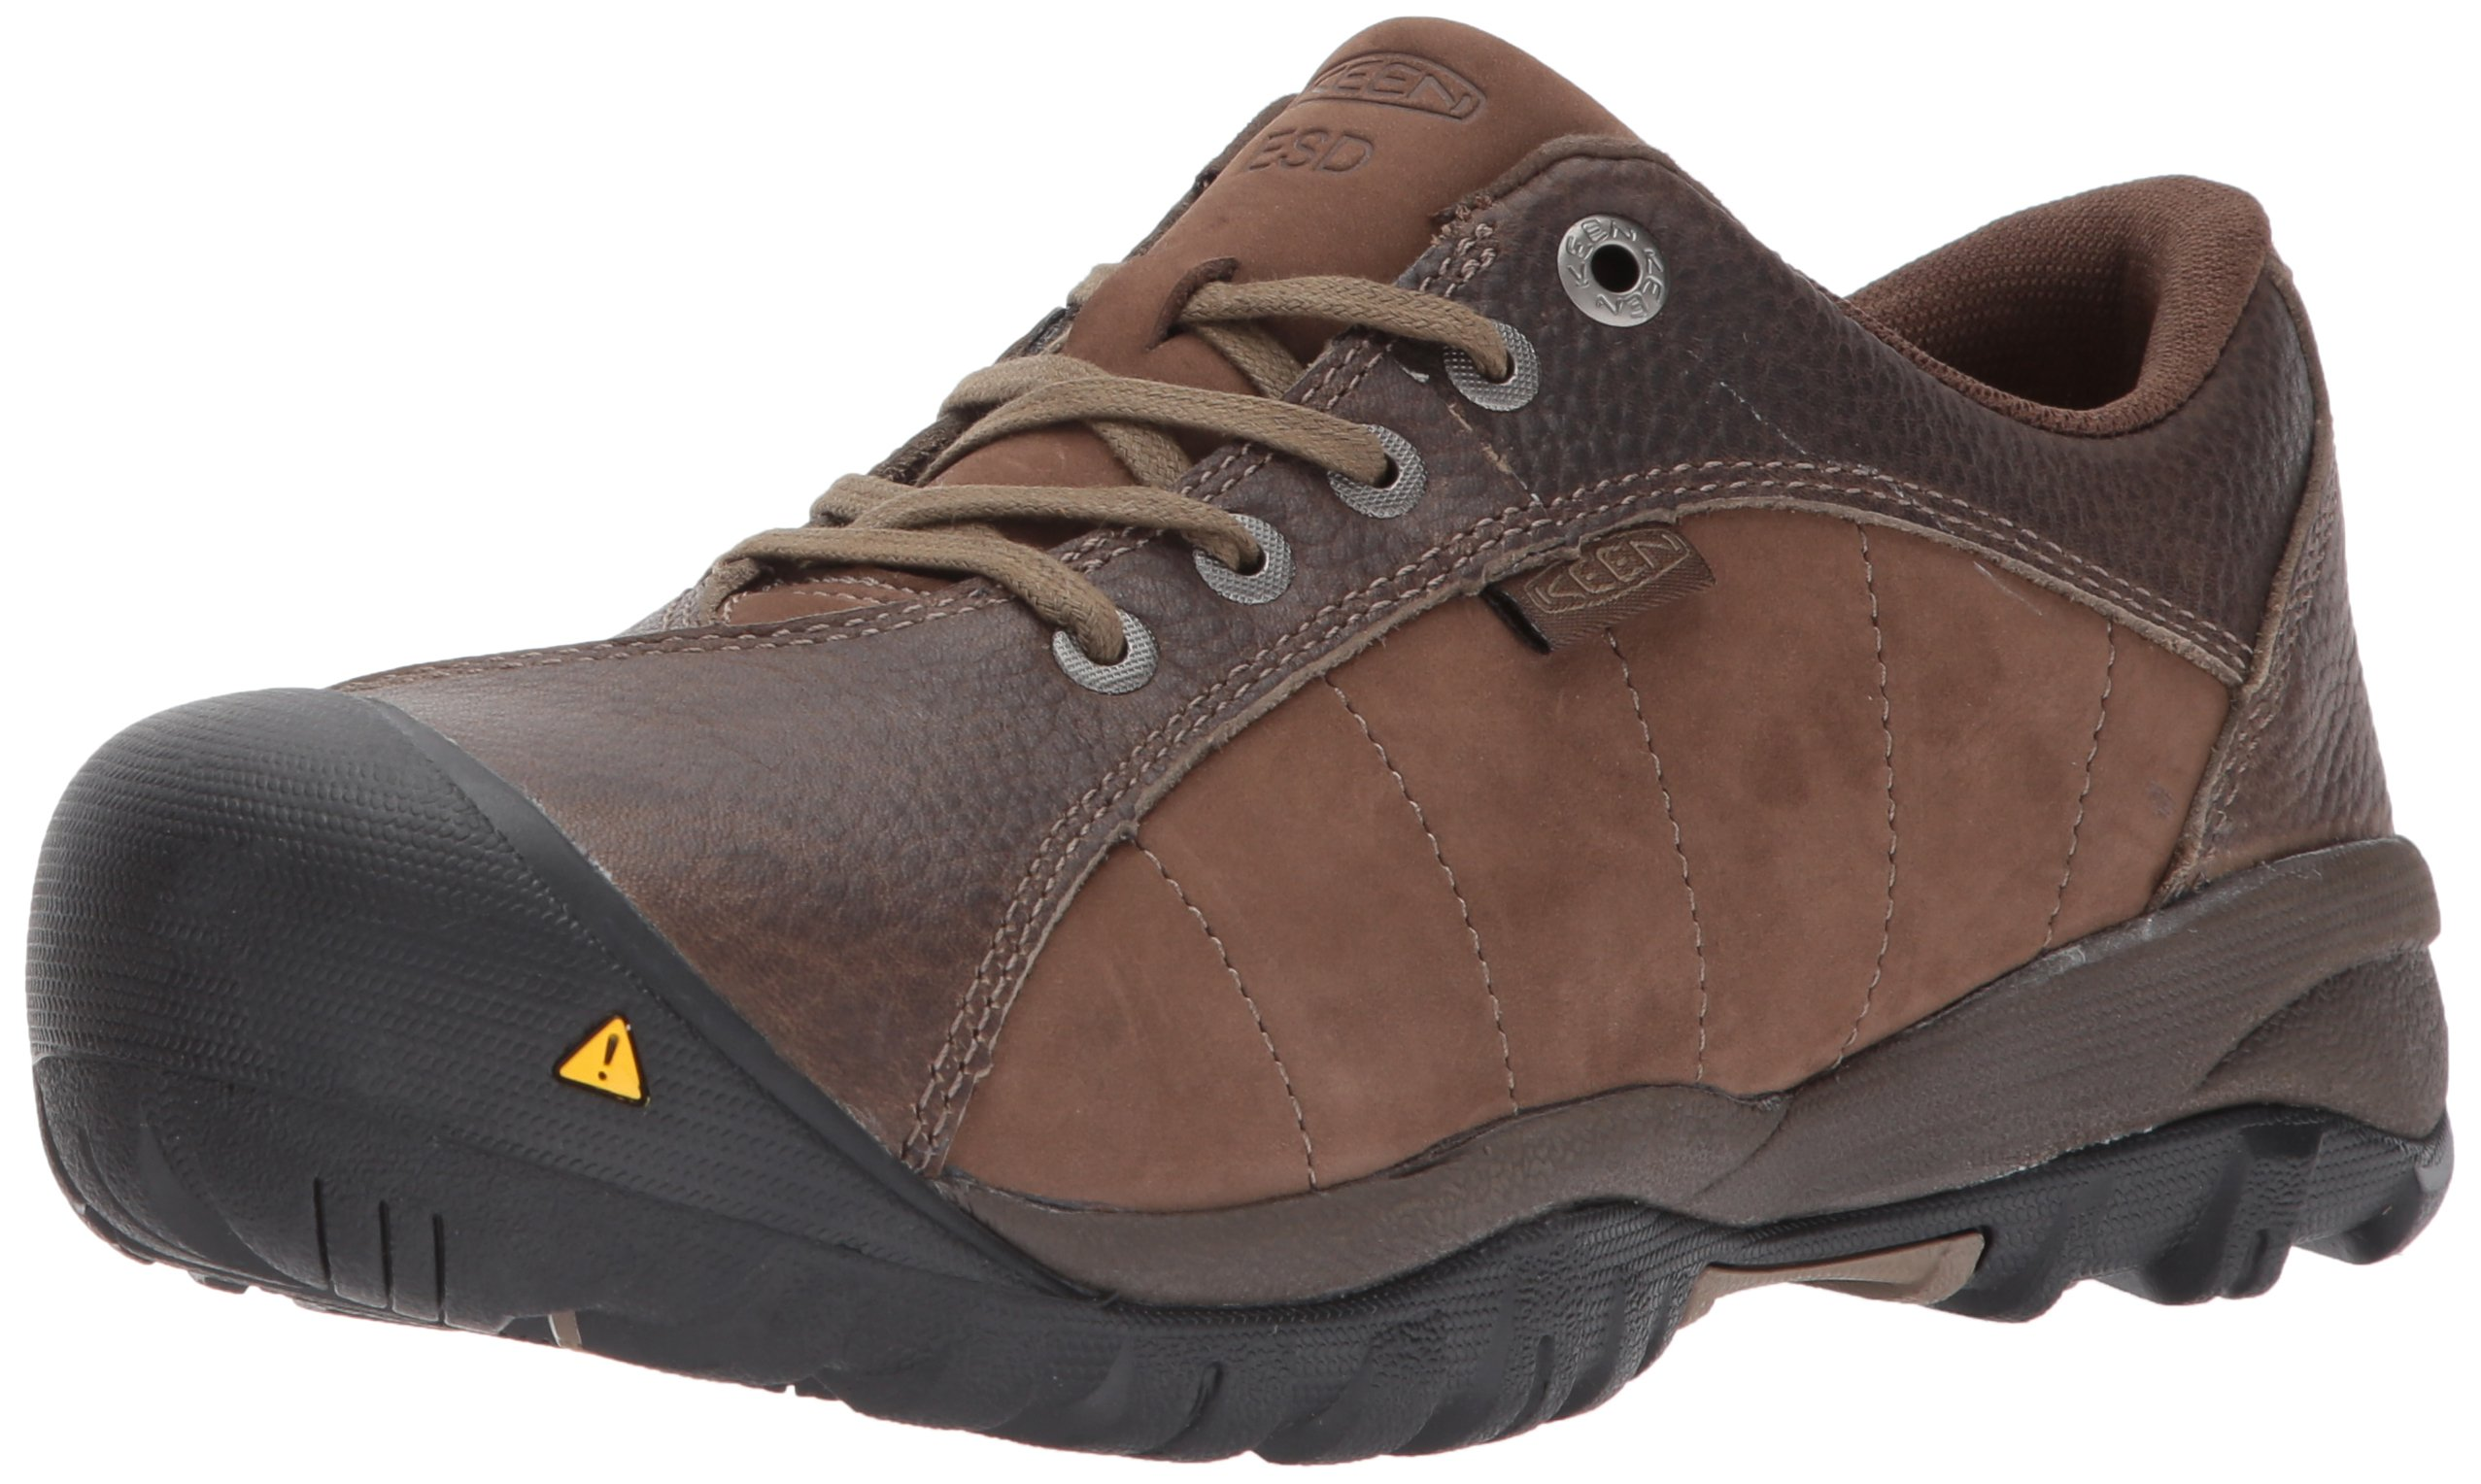 KEEN Utility Women's Santa FE at ESD Industrial and Construction Shoe, Cascade Brown/Shiitake, 5.5 M US